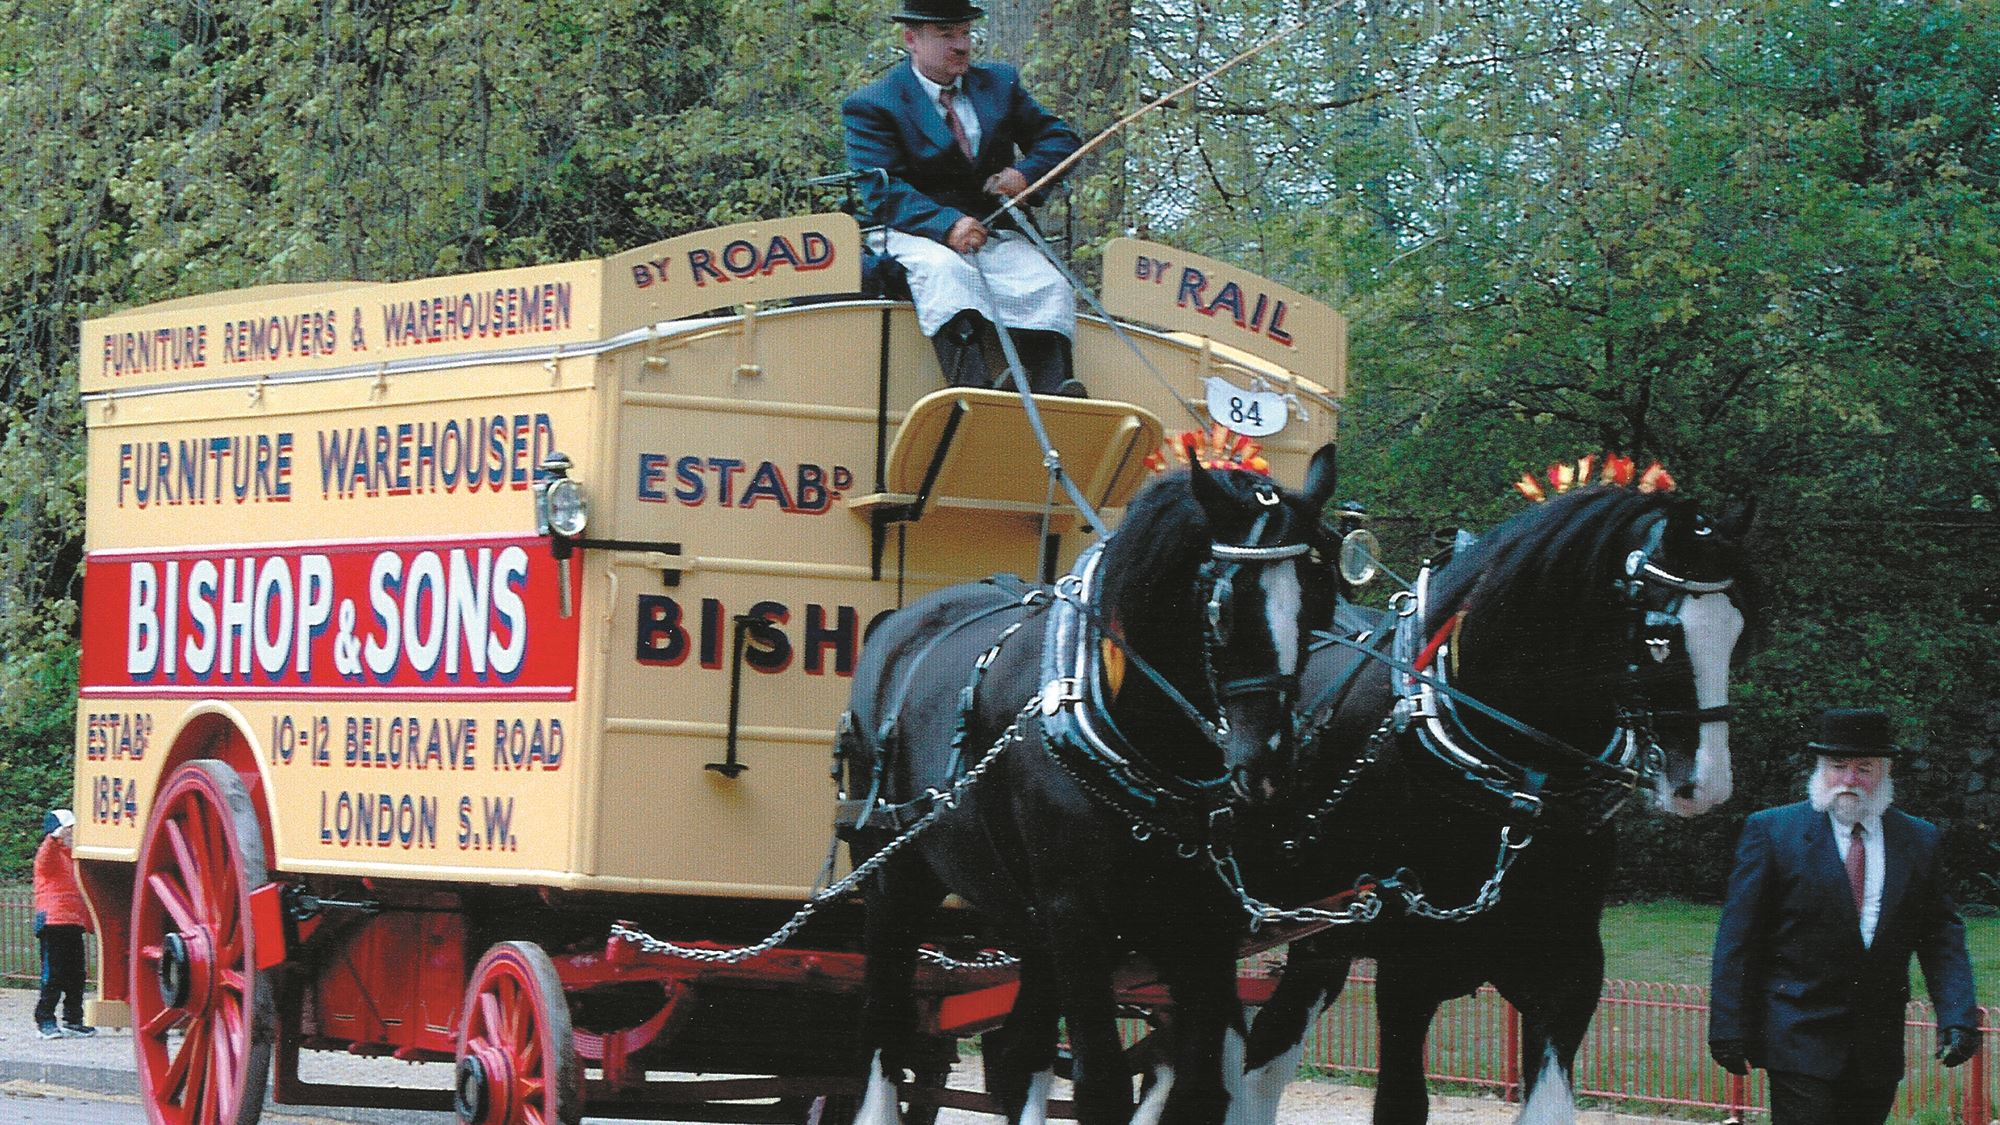 Bishop's & Sons horse and carridge